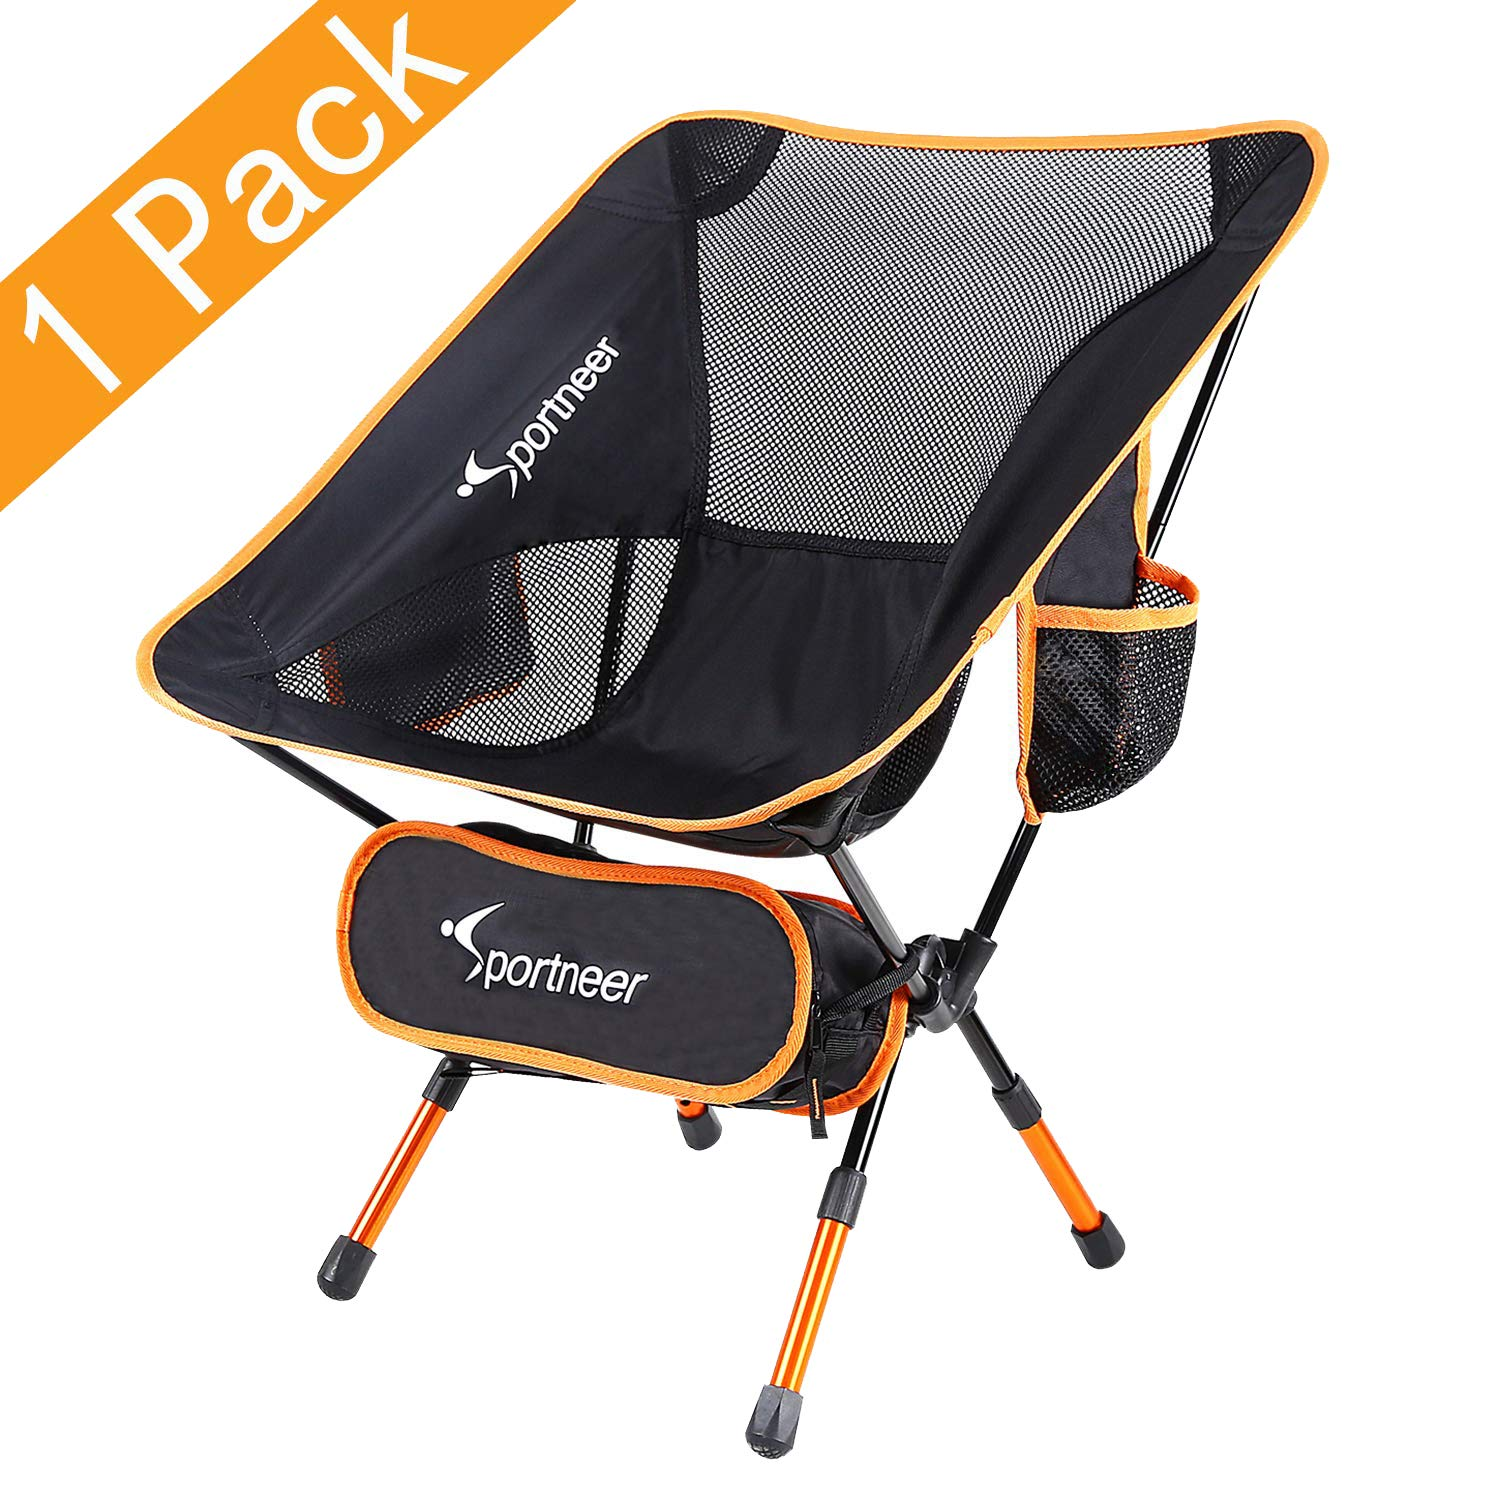 Fishing Hiking Picnics Beach Asteri Folding Camping Chair Lightweight Portable Chairs Compact Backpacking with Carry Bag for Outdoor